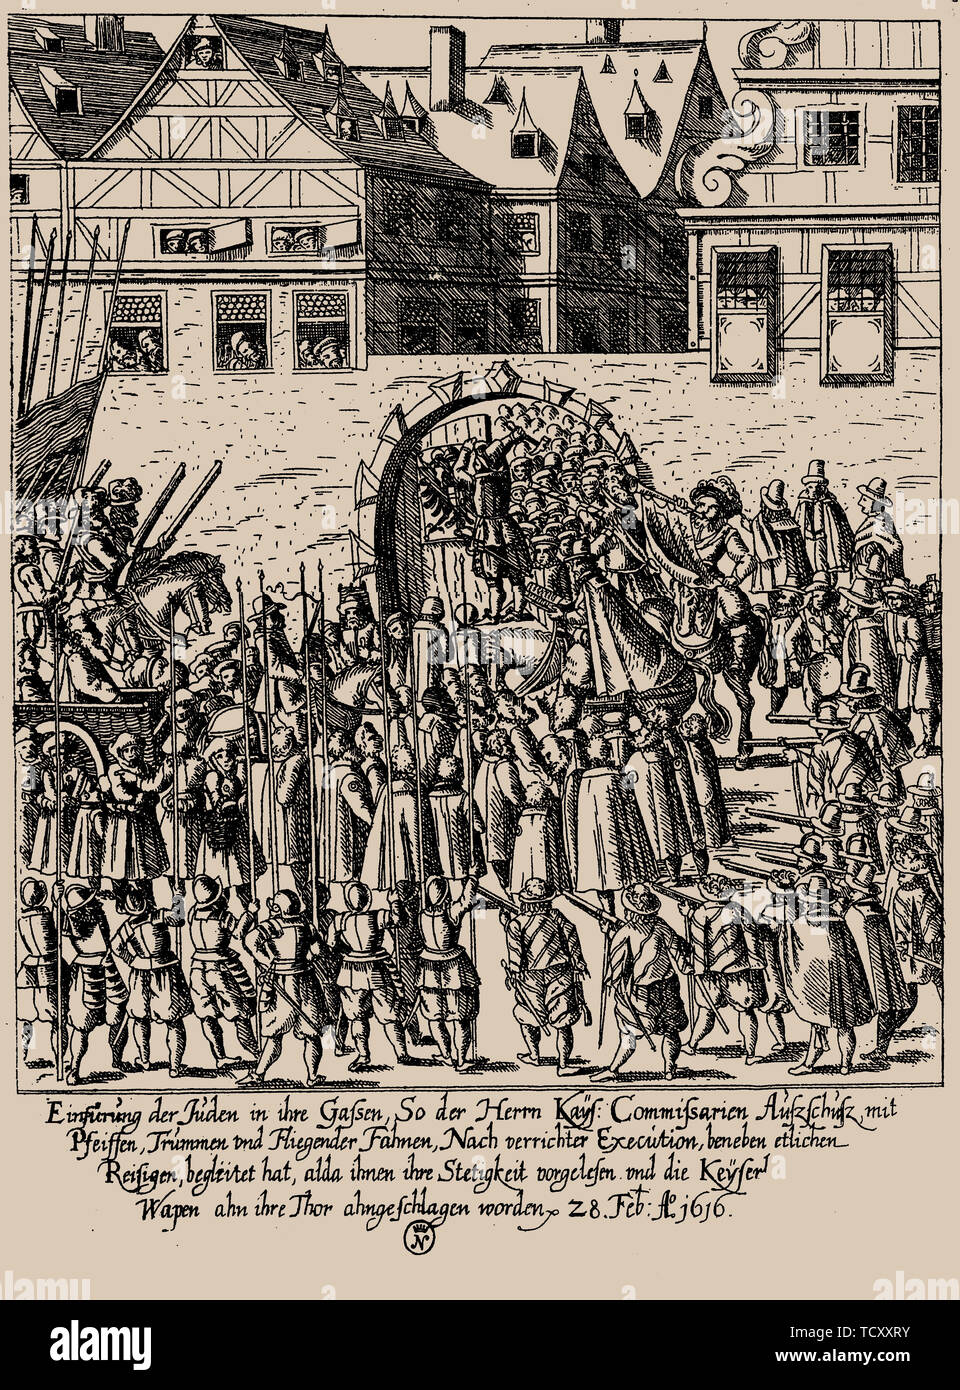 The Fettmilch Rising. Reintroduction of the Jews in Frankfurt on February 28, 1616 according to imperial proclamation , c. 1616-1617. Private Collection. - Stock Image